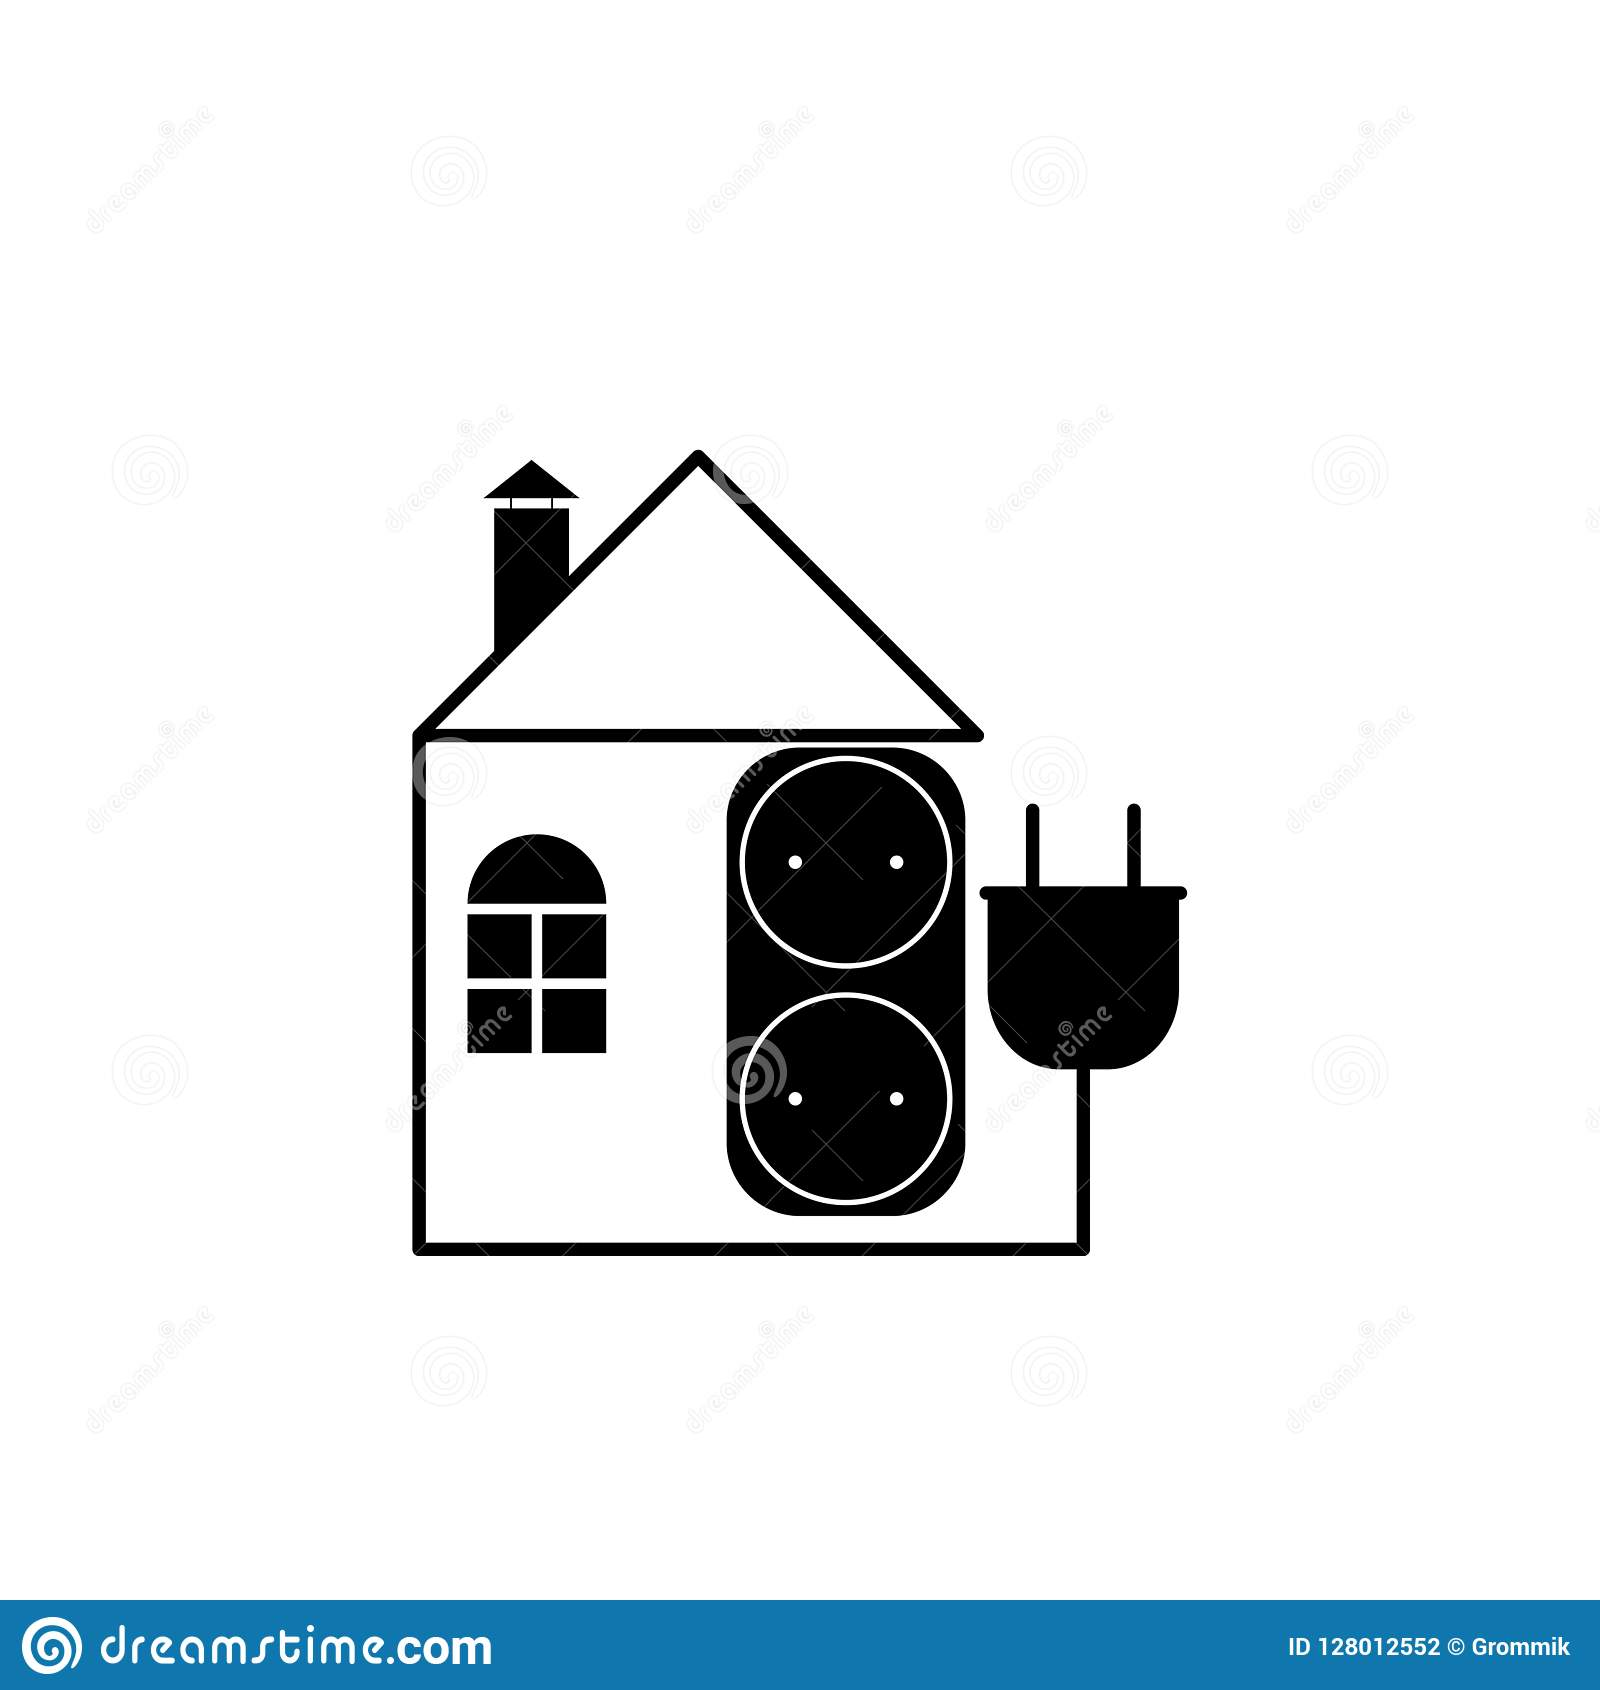 Electrical Plug Wiring For A House Library On In The Home Outlet As Flat Image With Of And An